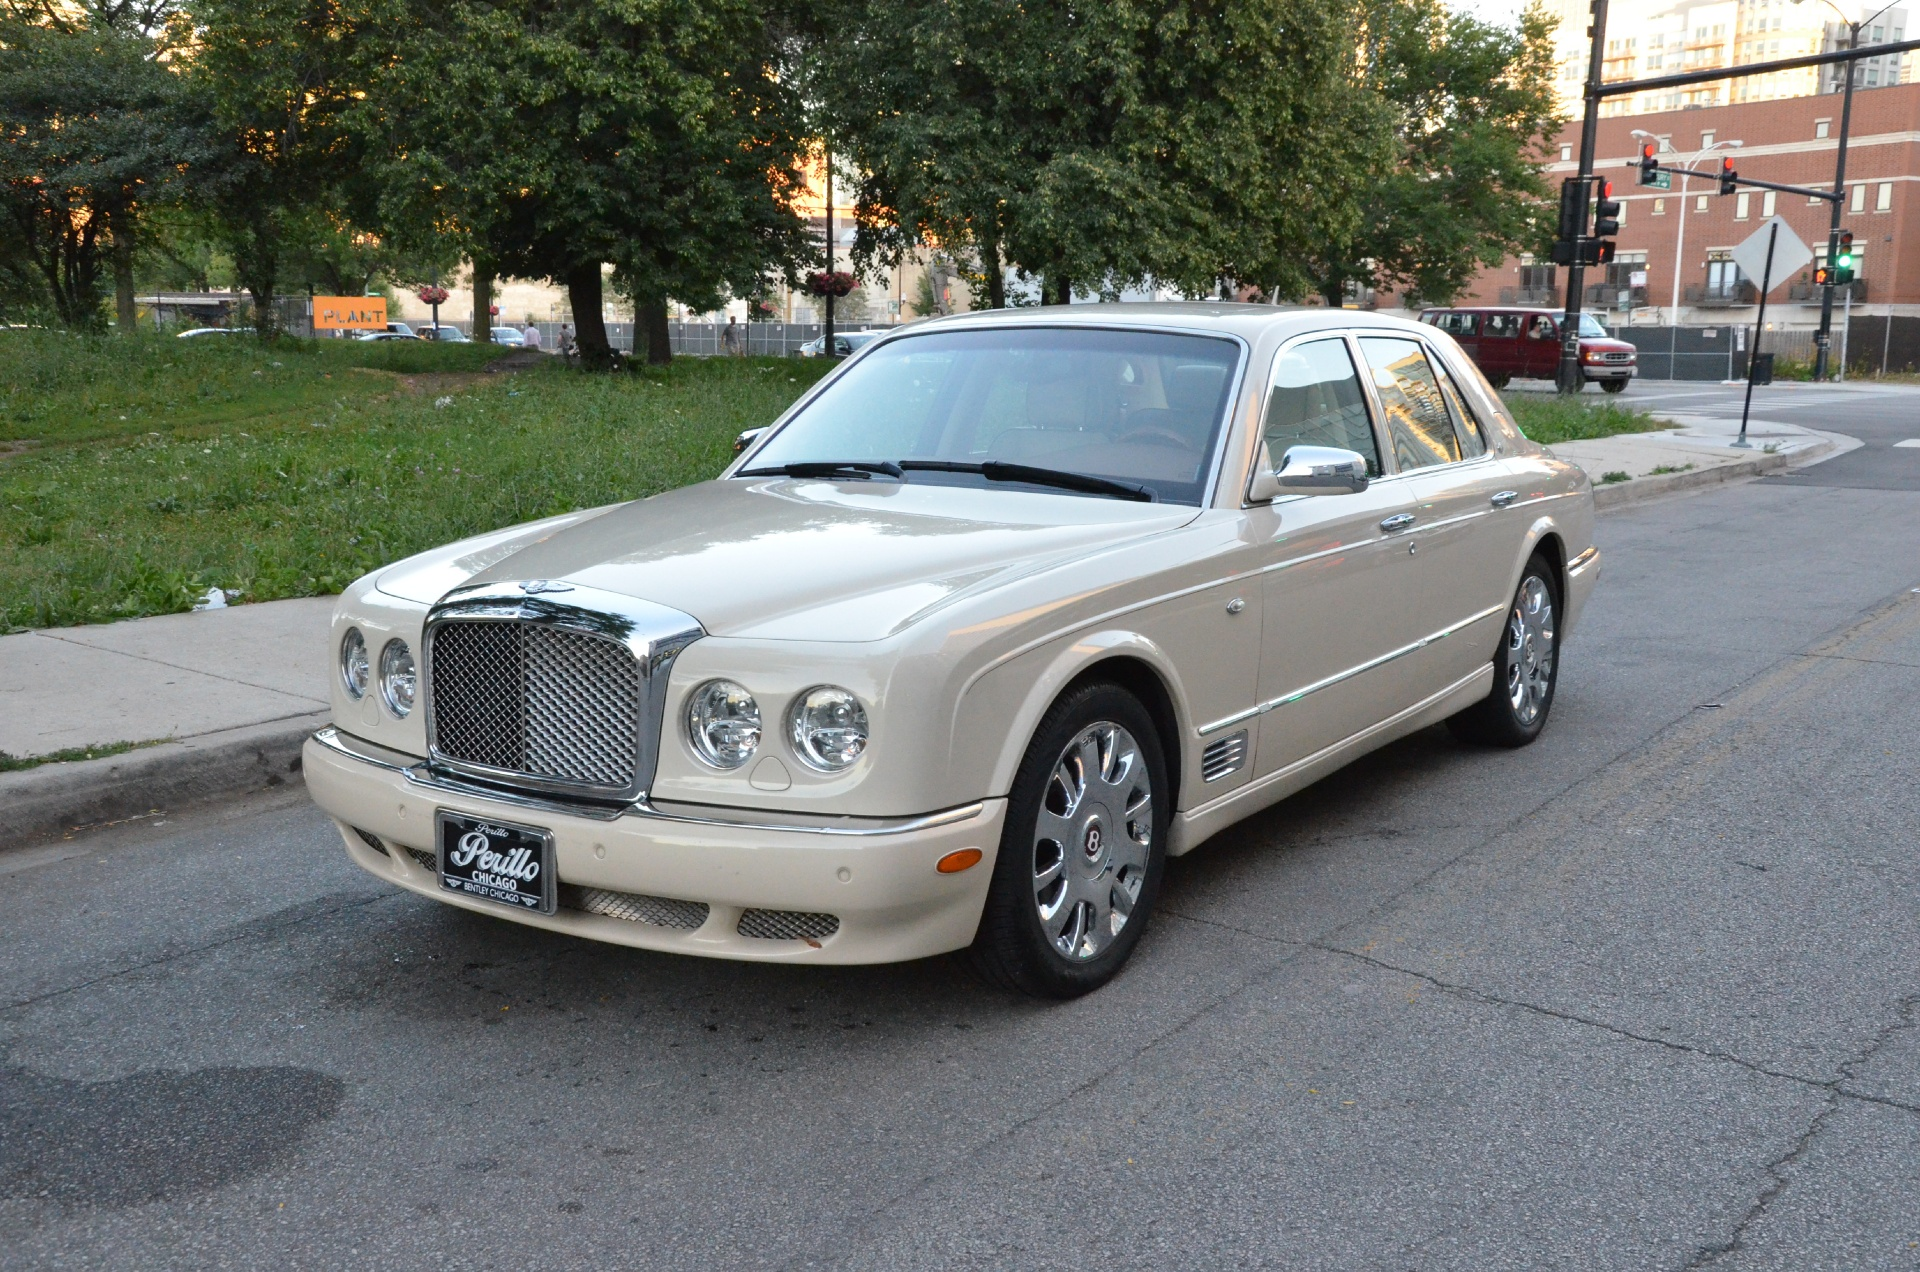 2006 bentley arnage r stock # b686a for sale near chicago, il | il